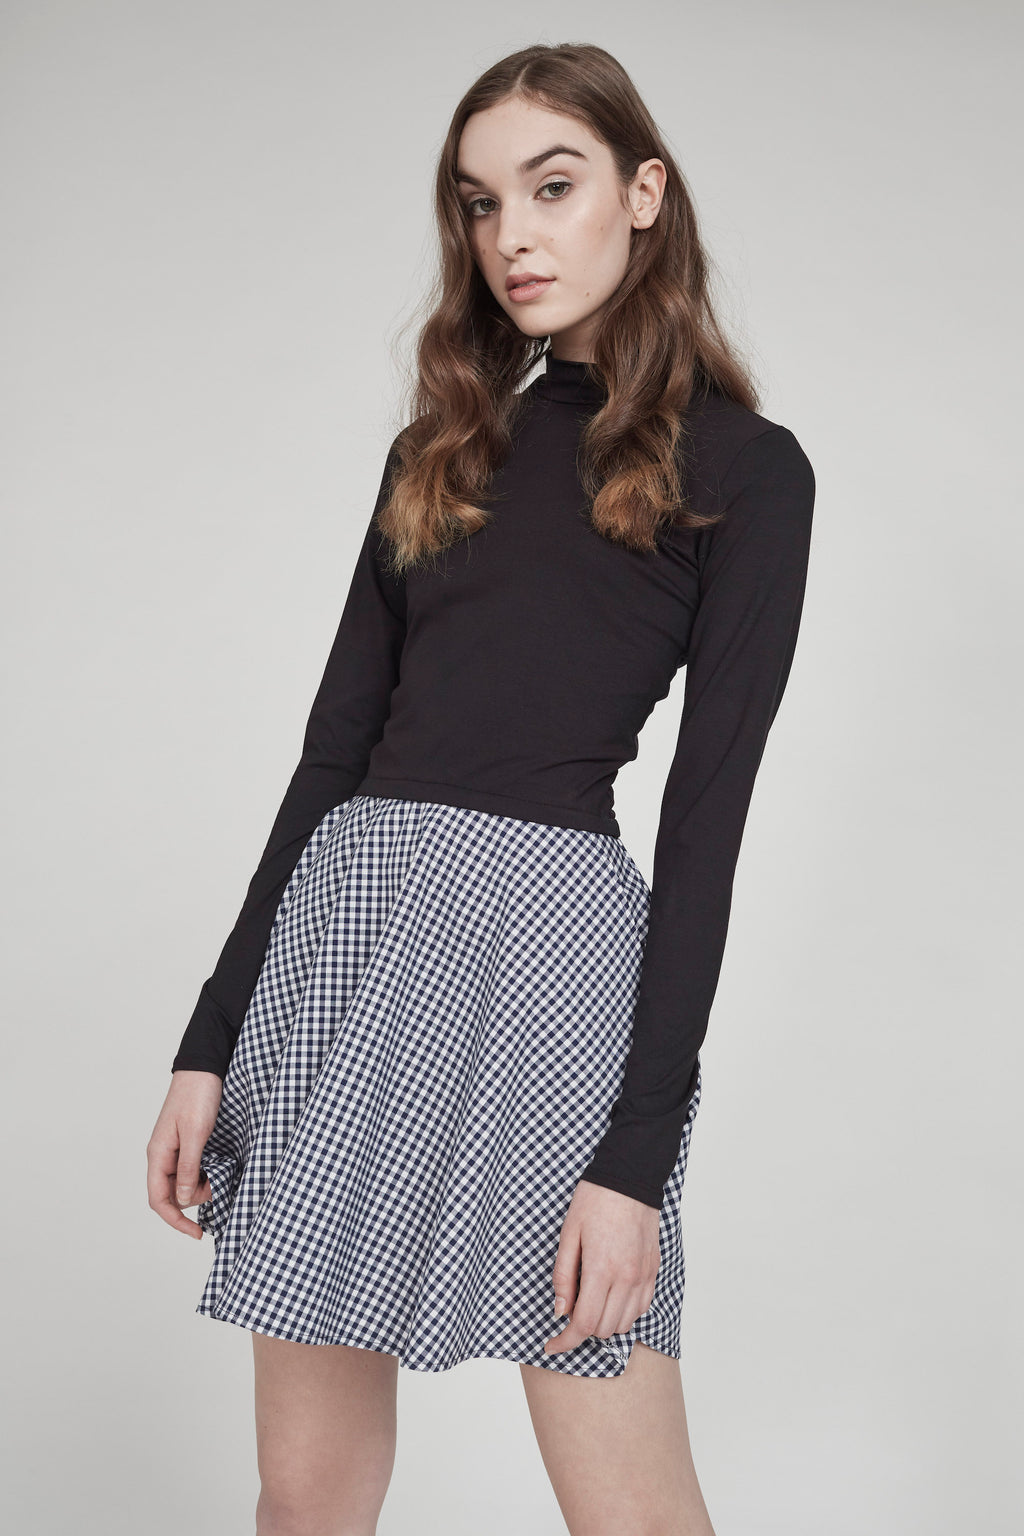 Best Friend | High-Waisted Skirt | Blue Gingham